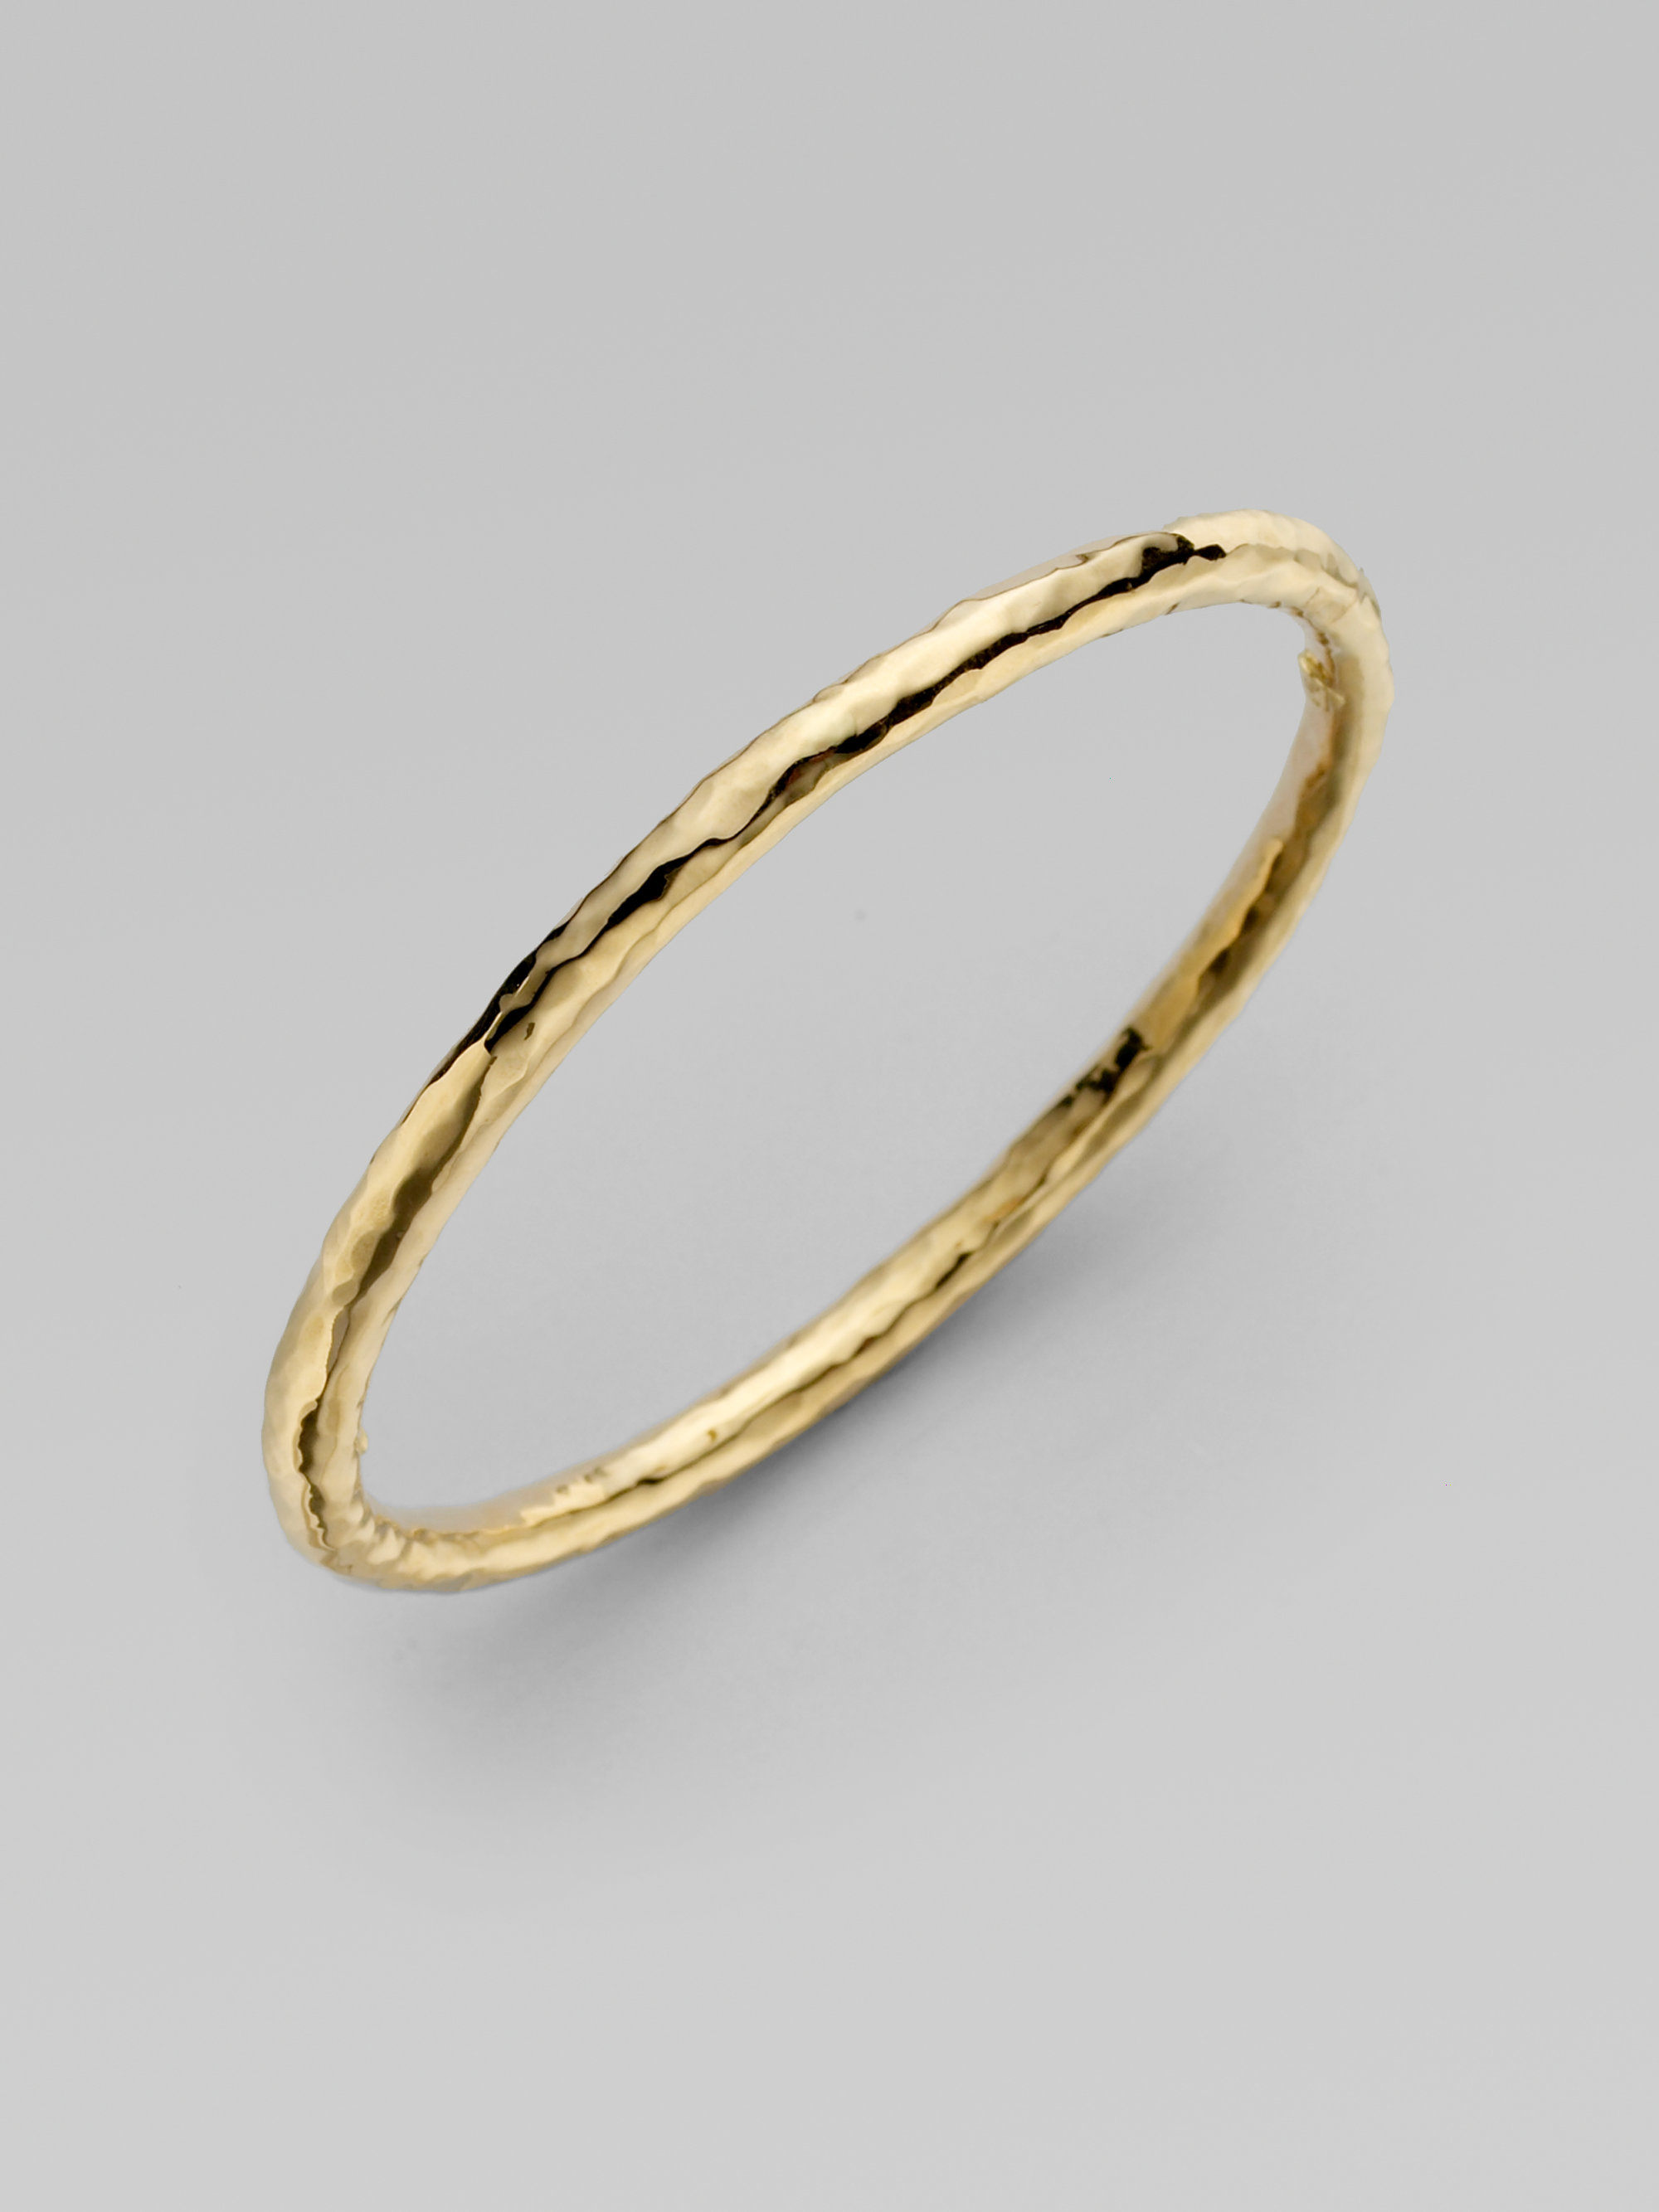 Roberto Coin Martellato 18k Yellow Gold Bangle Bracelet In